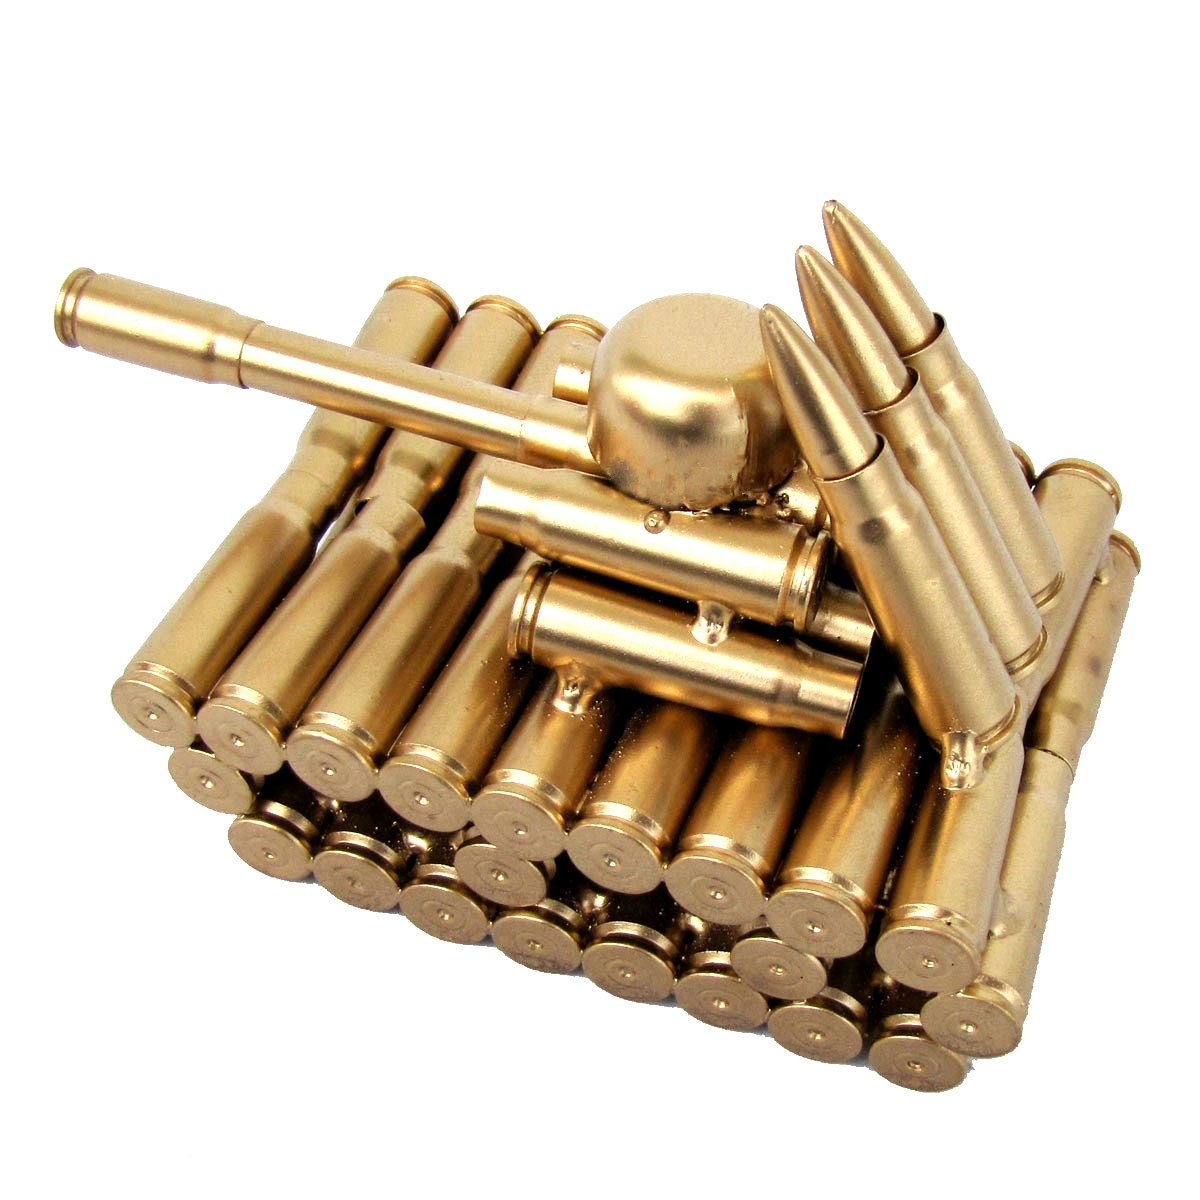 amazon com bullet shell casing shaped army tank sports outdoors